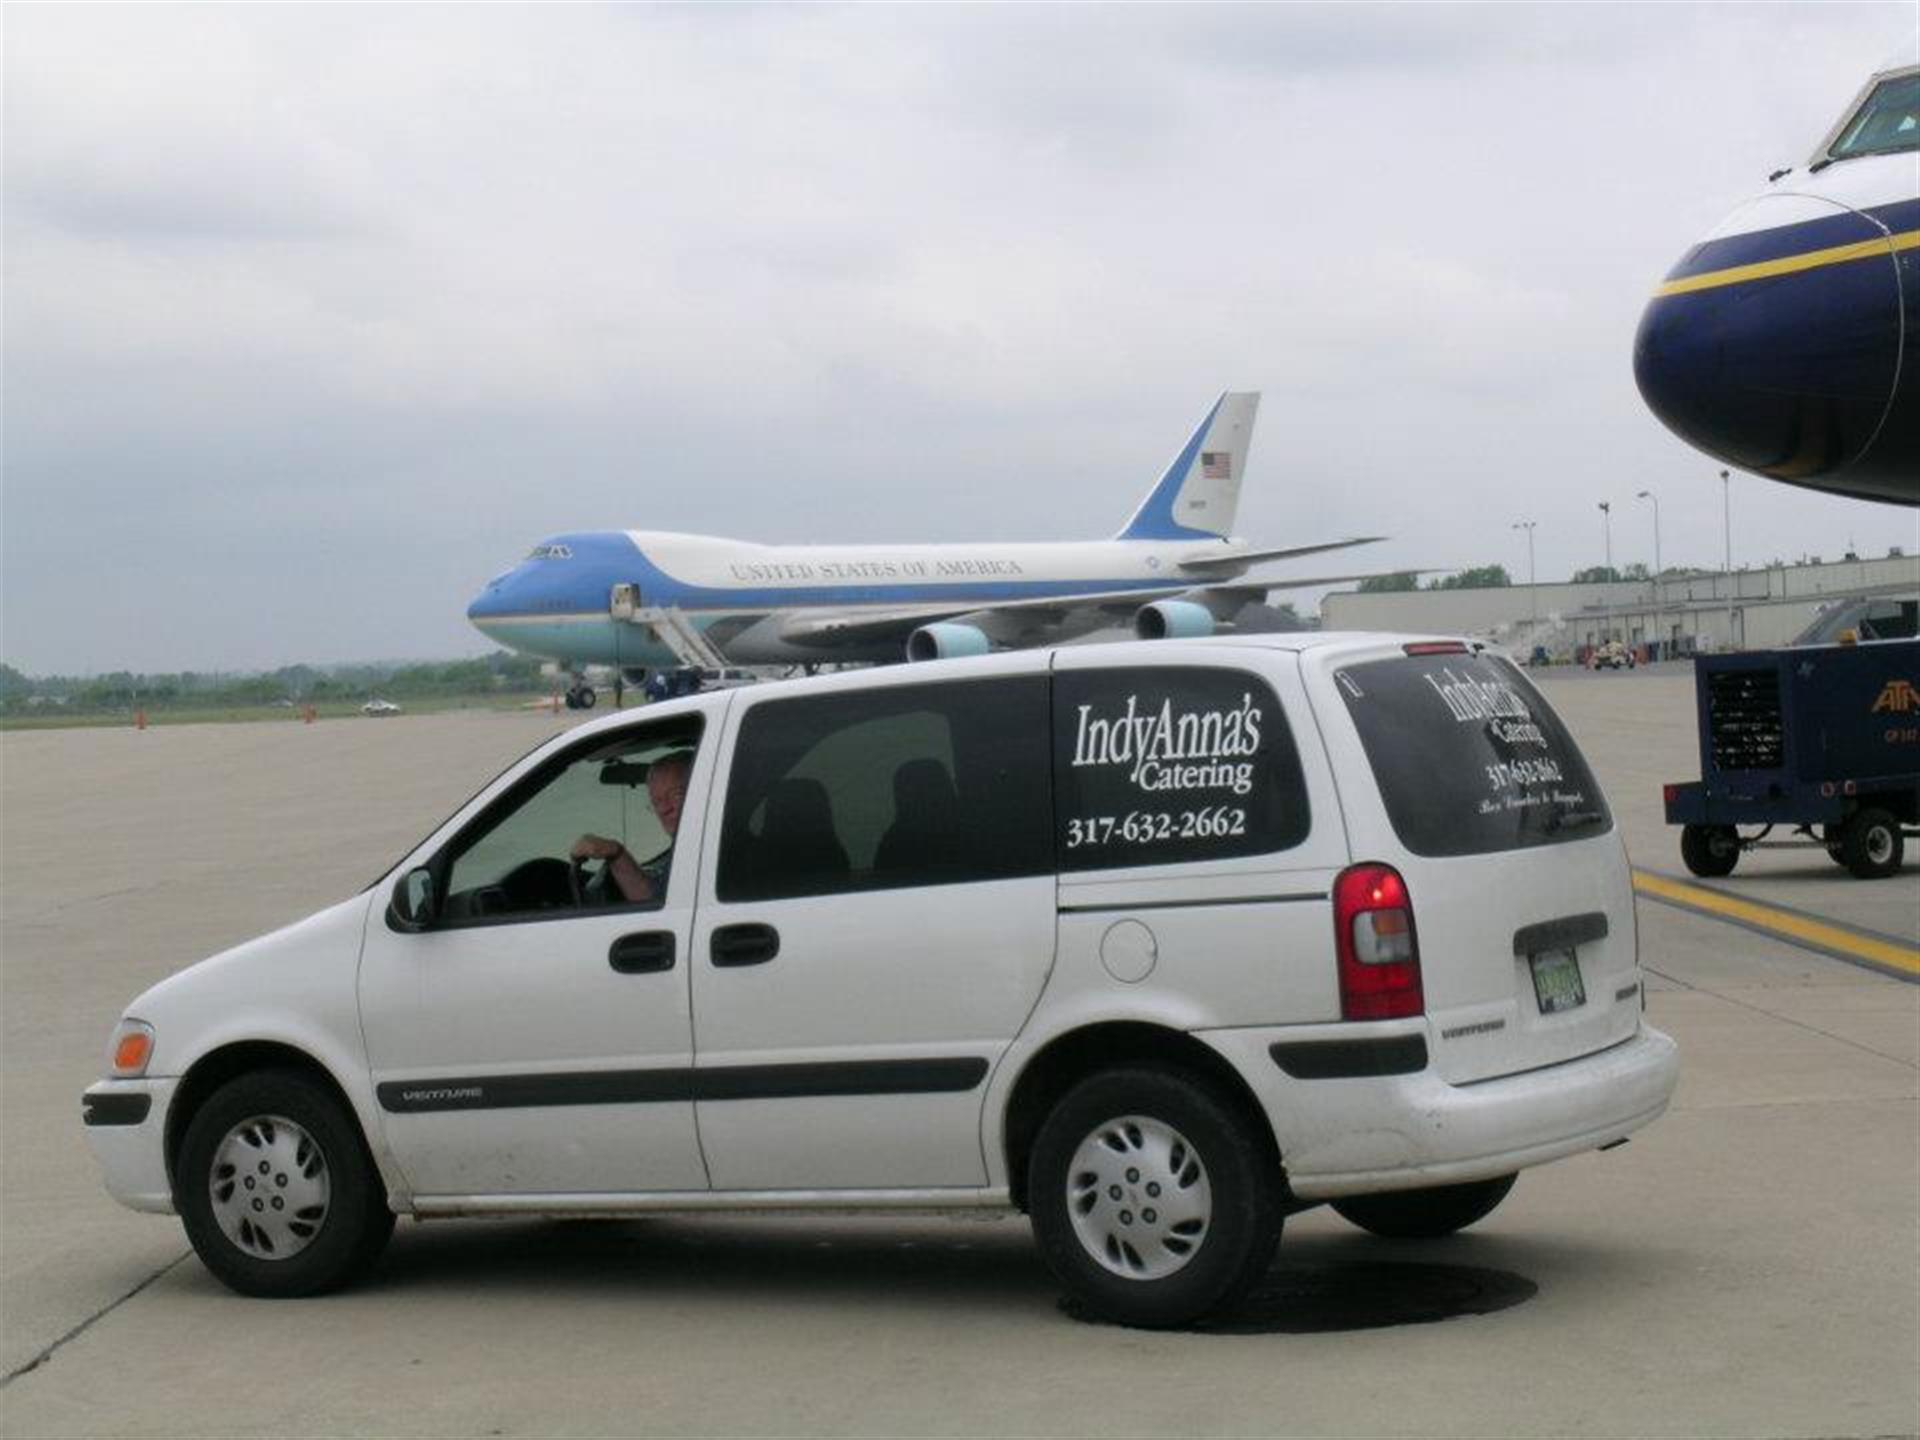 Catering for Air Force One